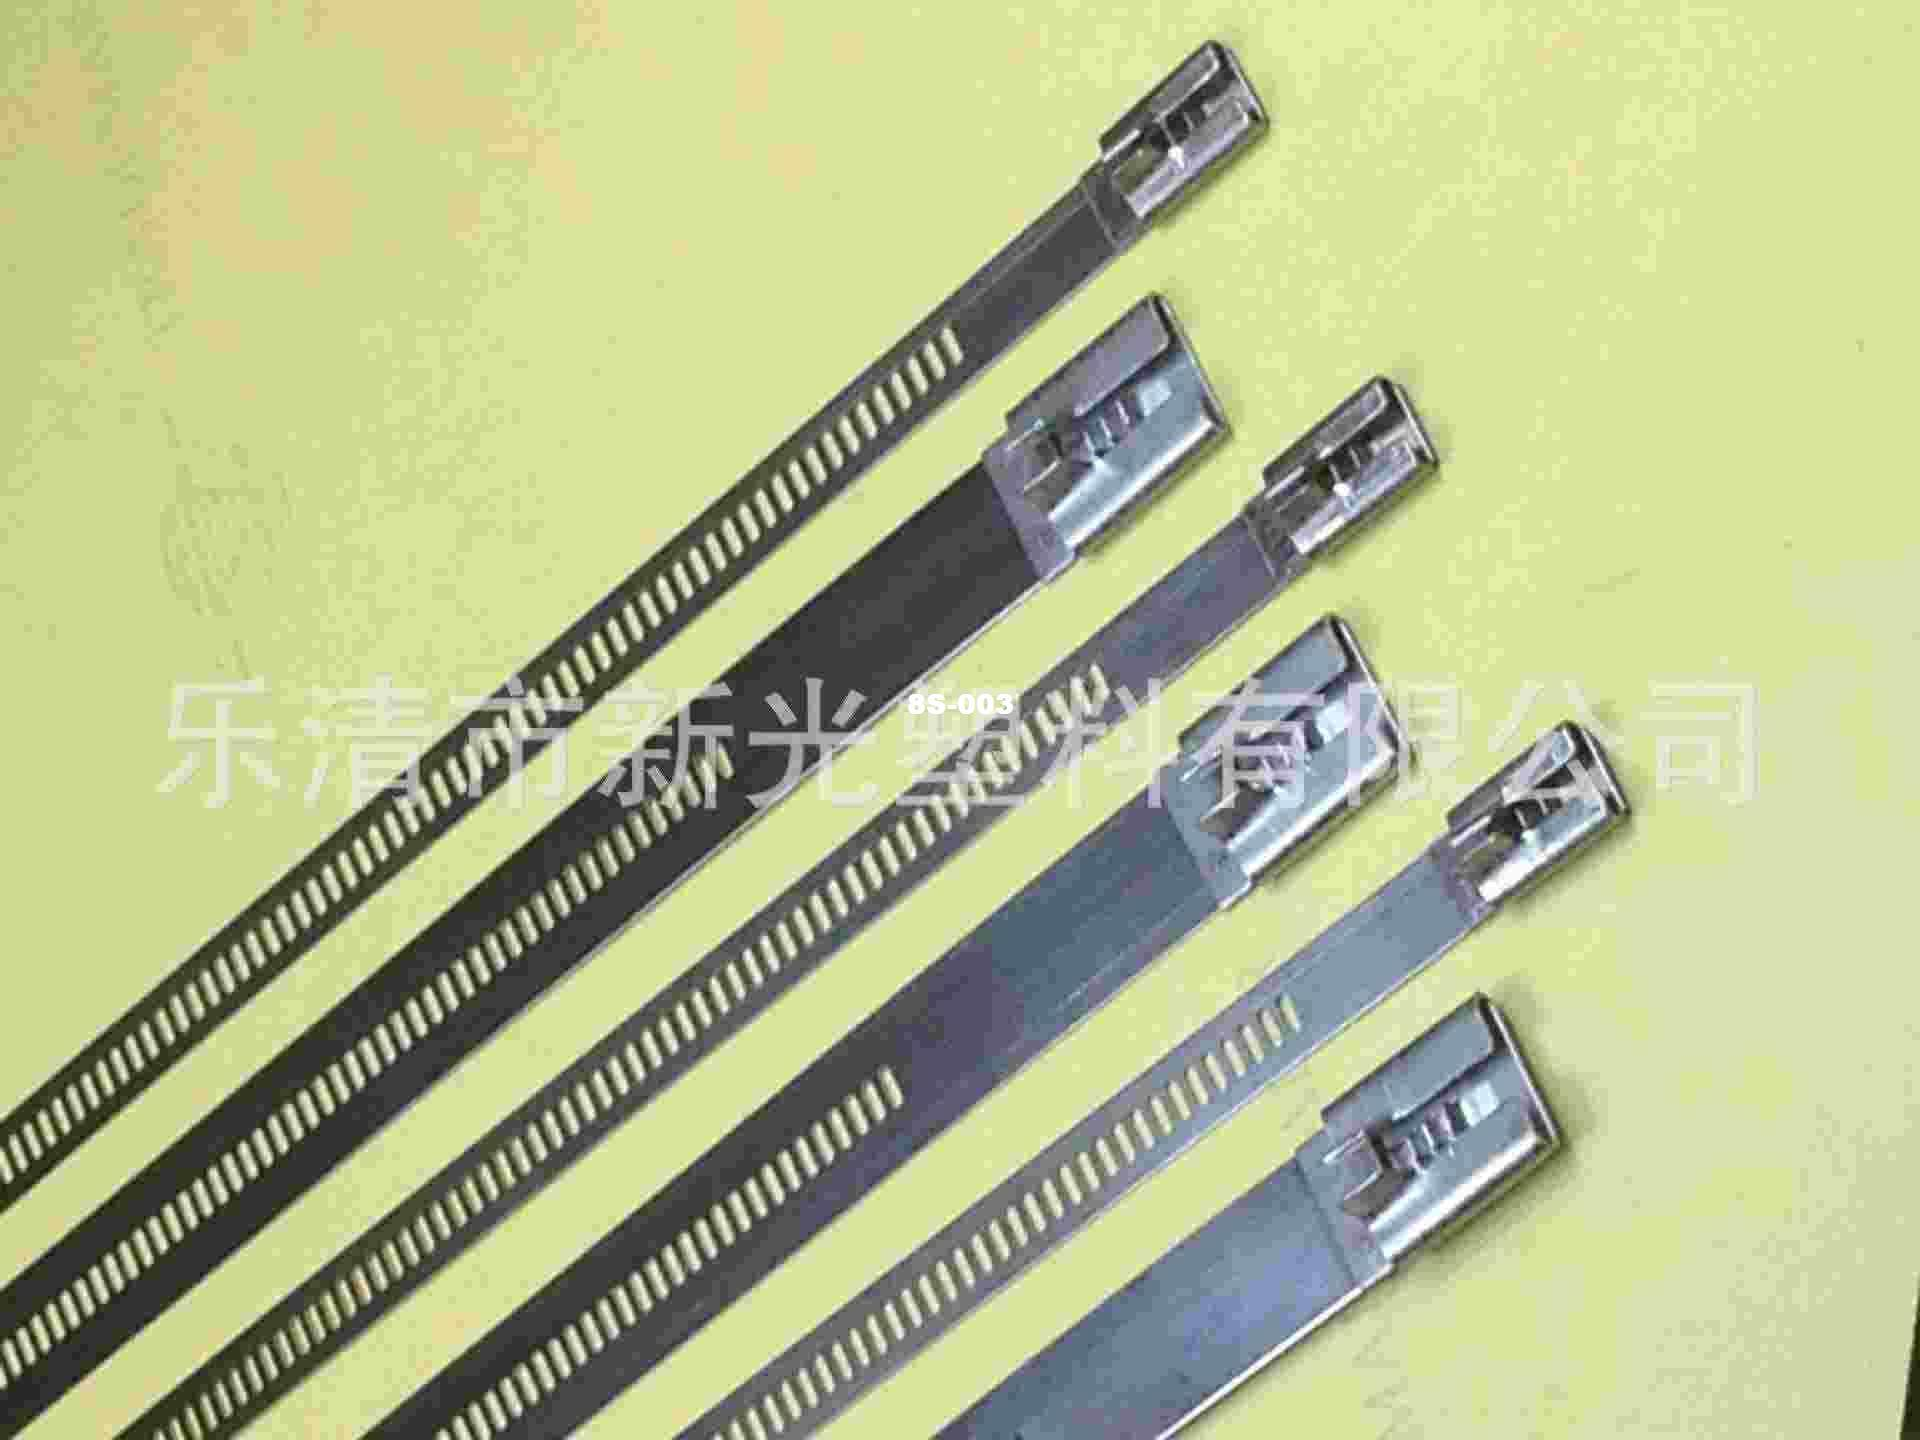 1 United States Steel Wire Rope Manufacturing Companies Contact Us Mail: 2018 Factory Outlets, Stainless Steel Cable Ties, Plastic